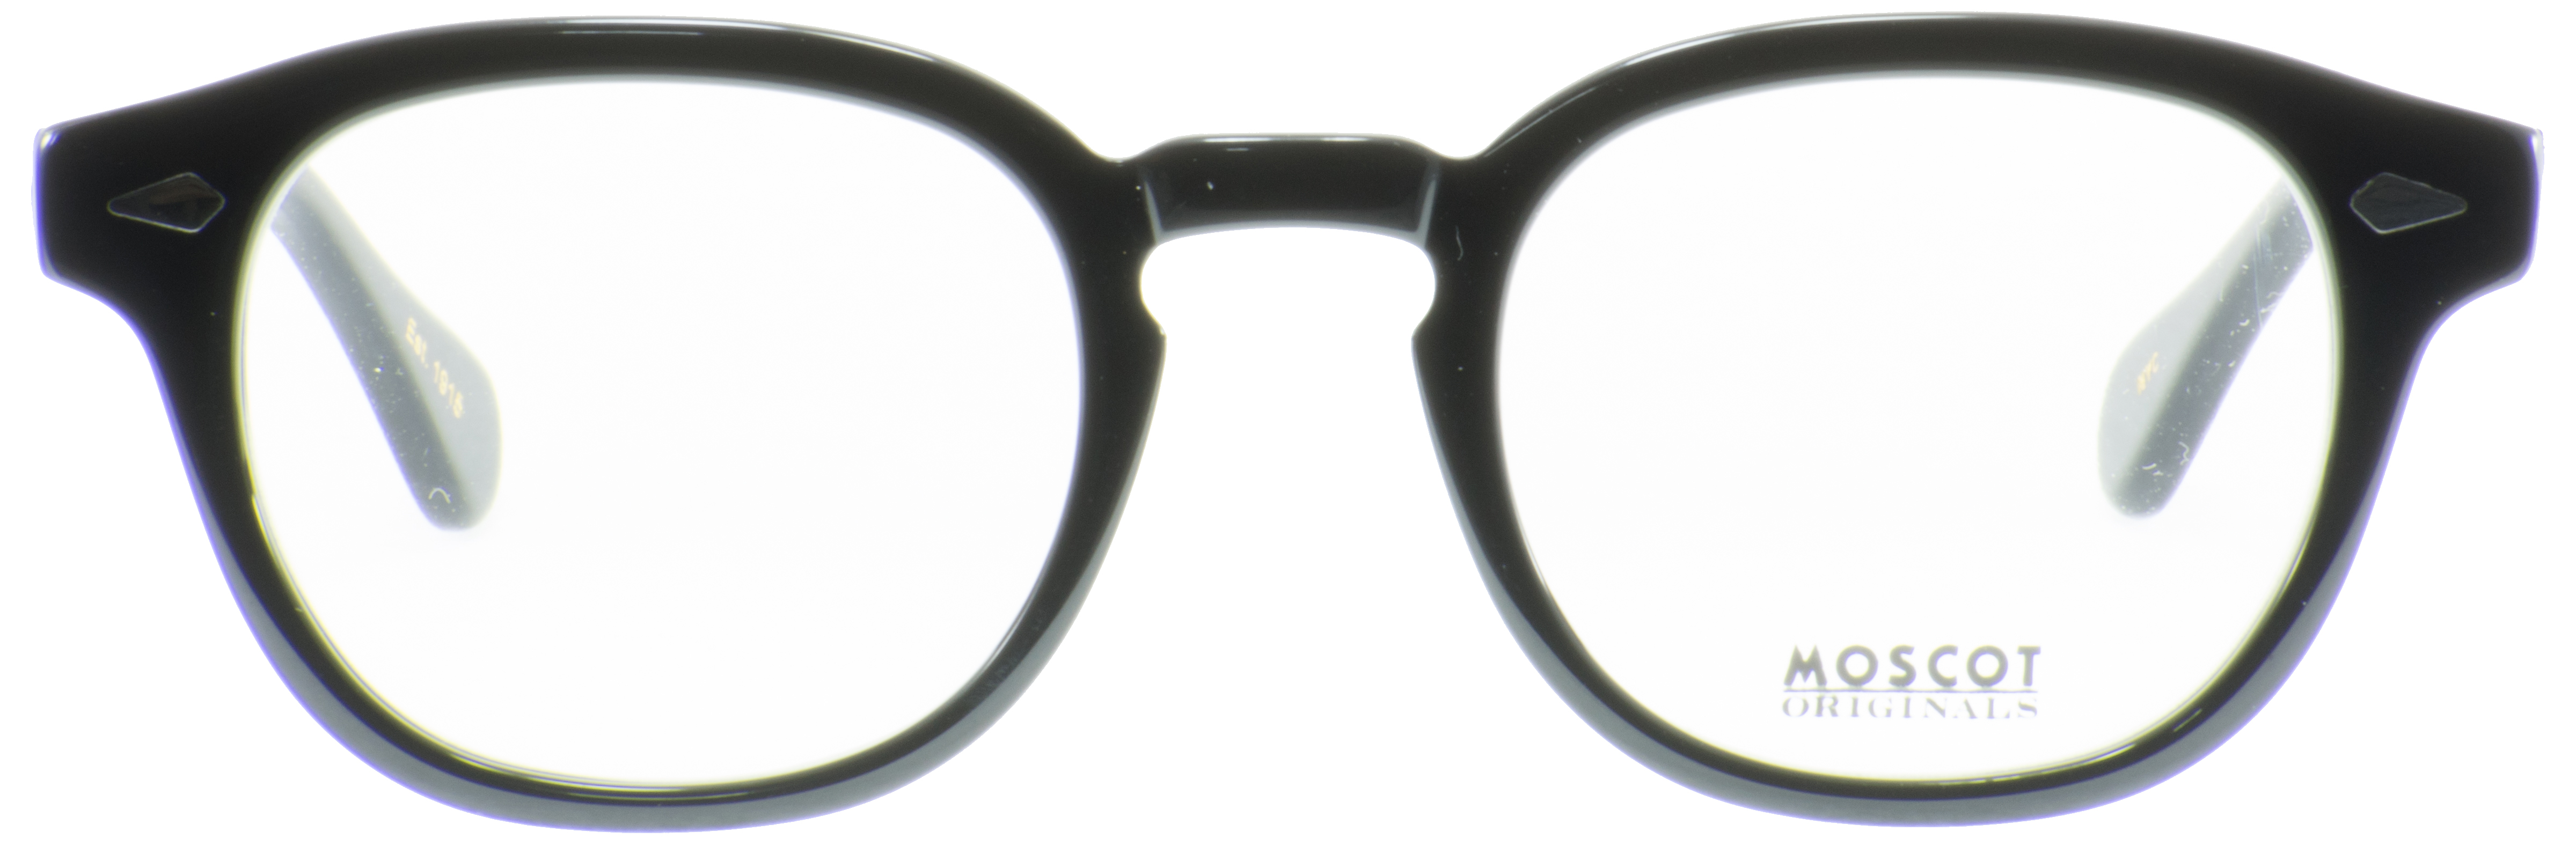 MOSCOT LEMTOSH 49 BLACK 1060088901